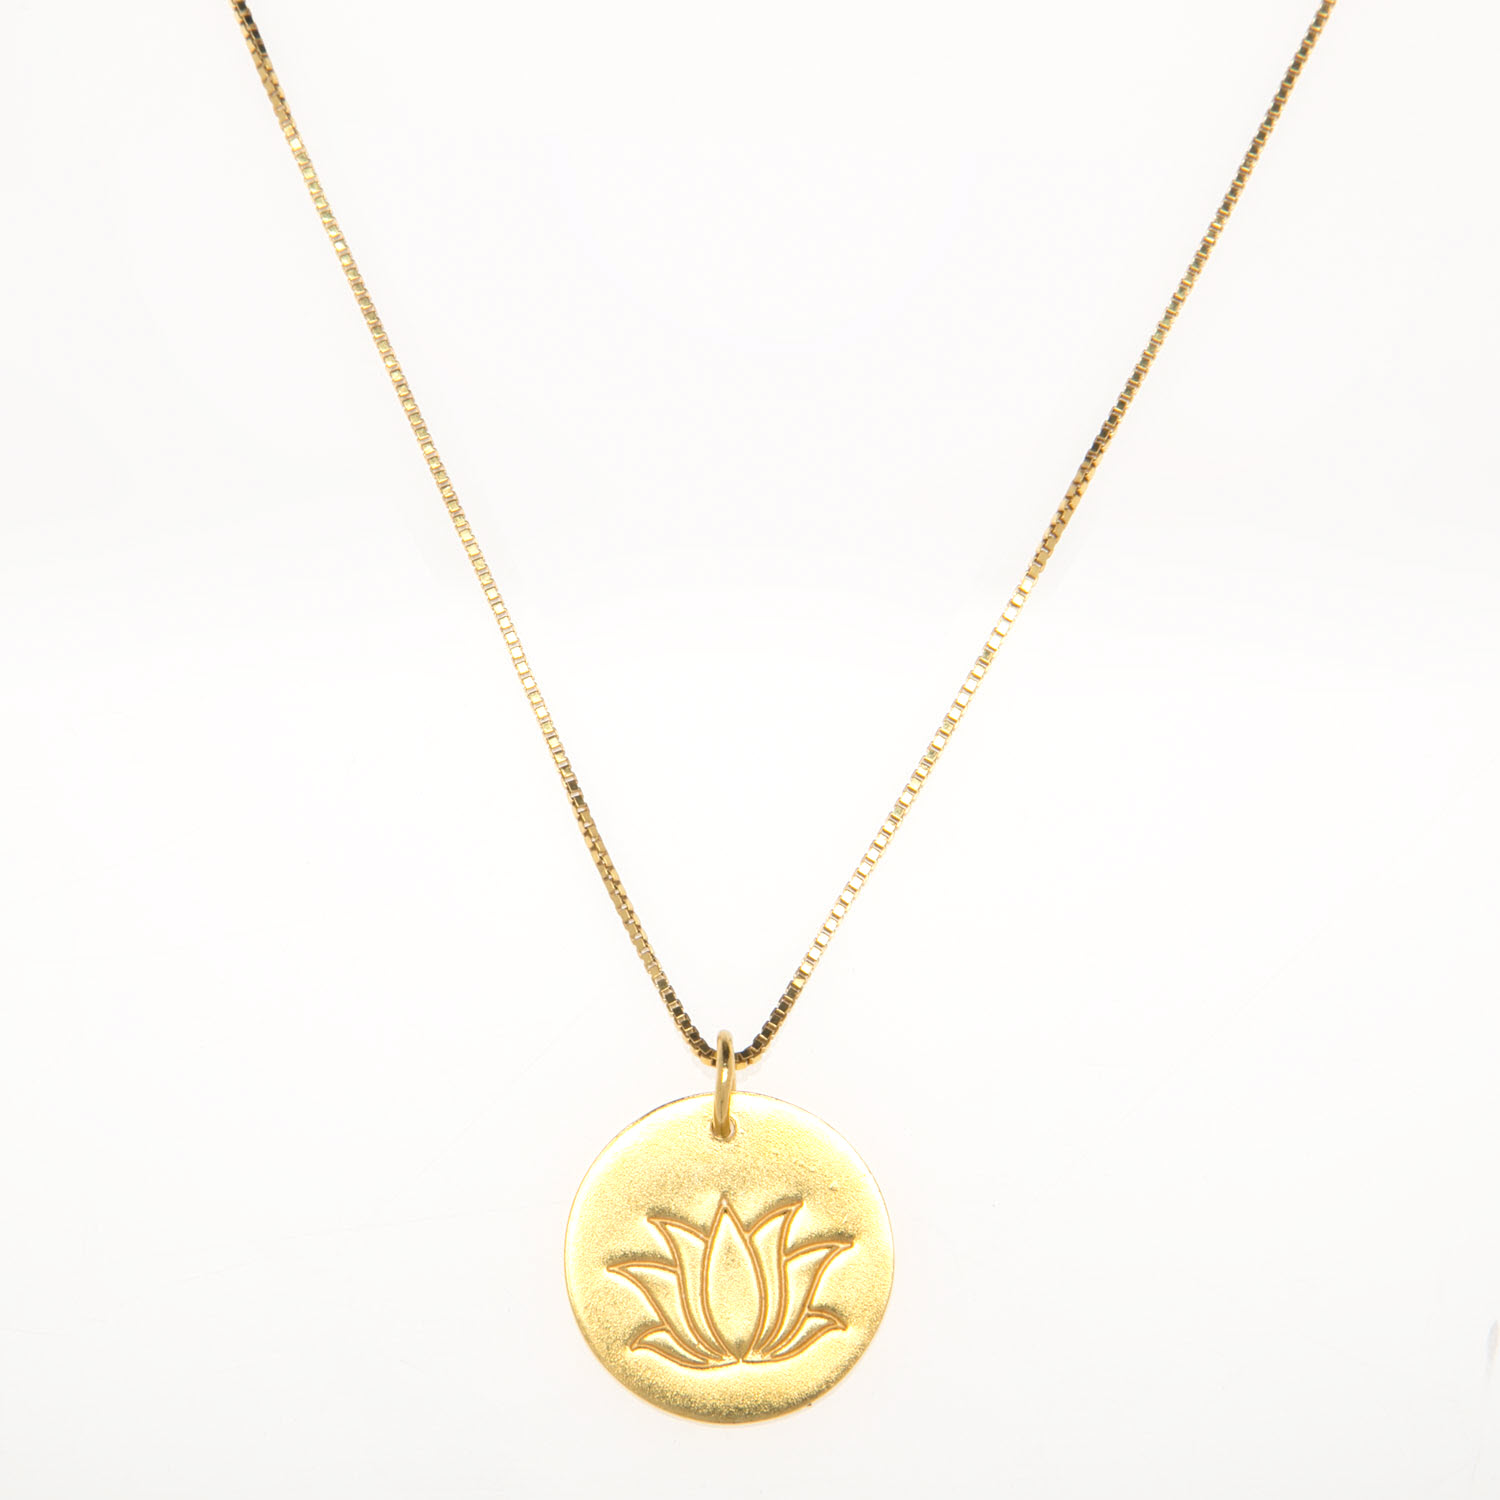 Gold Vermeil Lotus Flower Charm Necklace